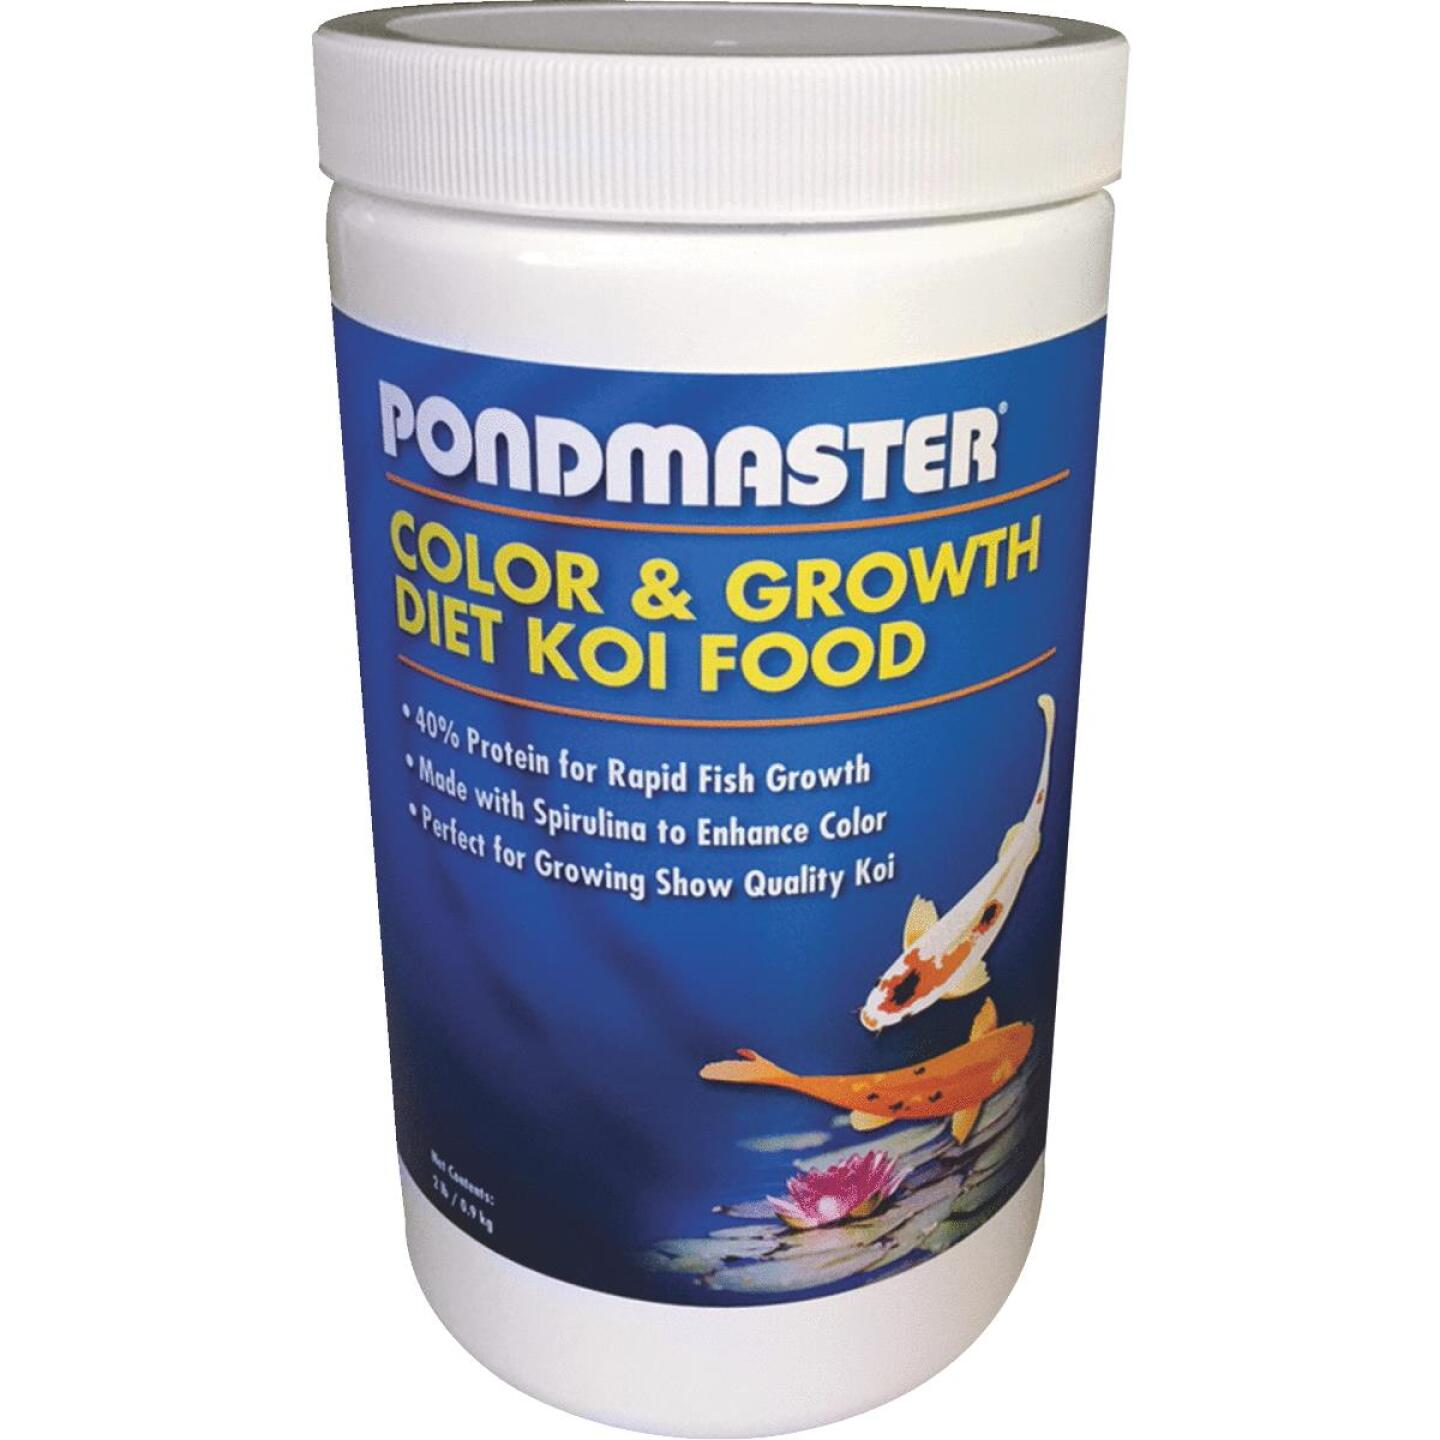 PondMaster 2 Lb. Color & Growth Diet Koi Pond Fish Food Image 1